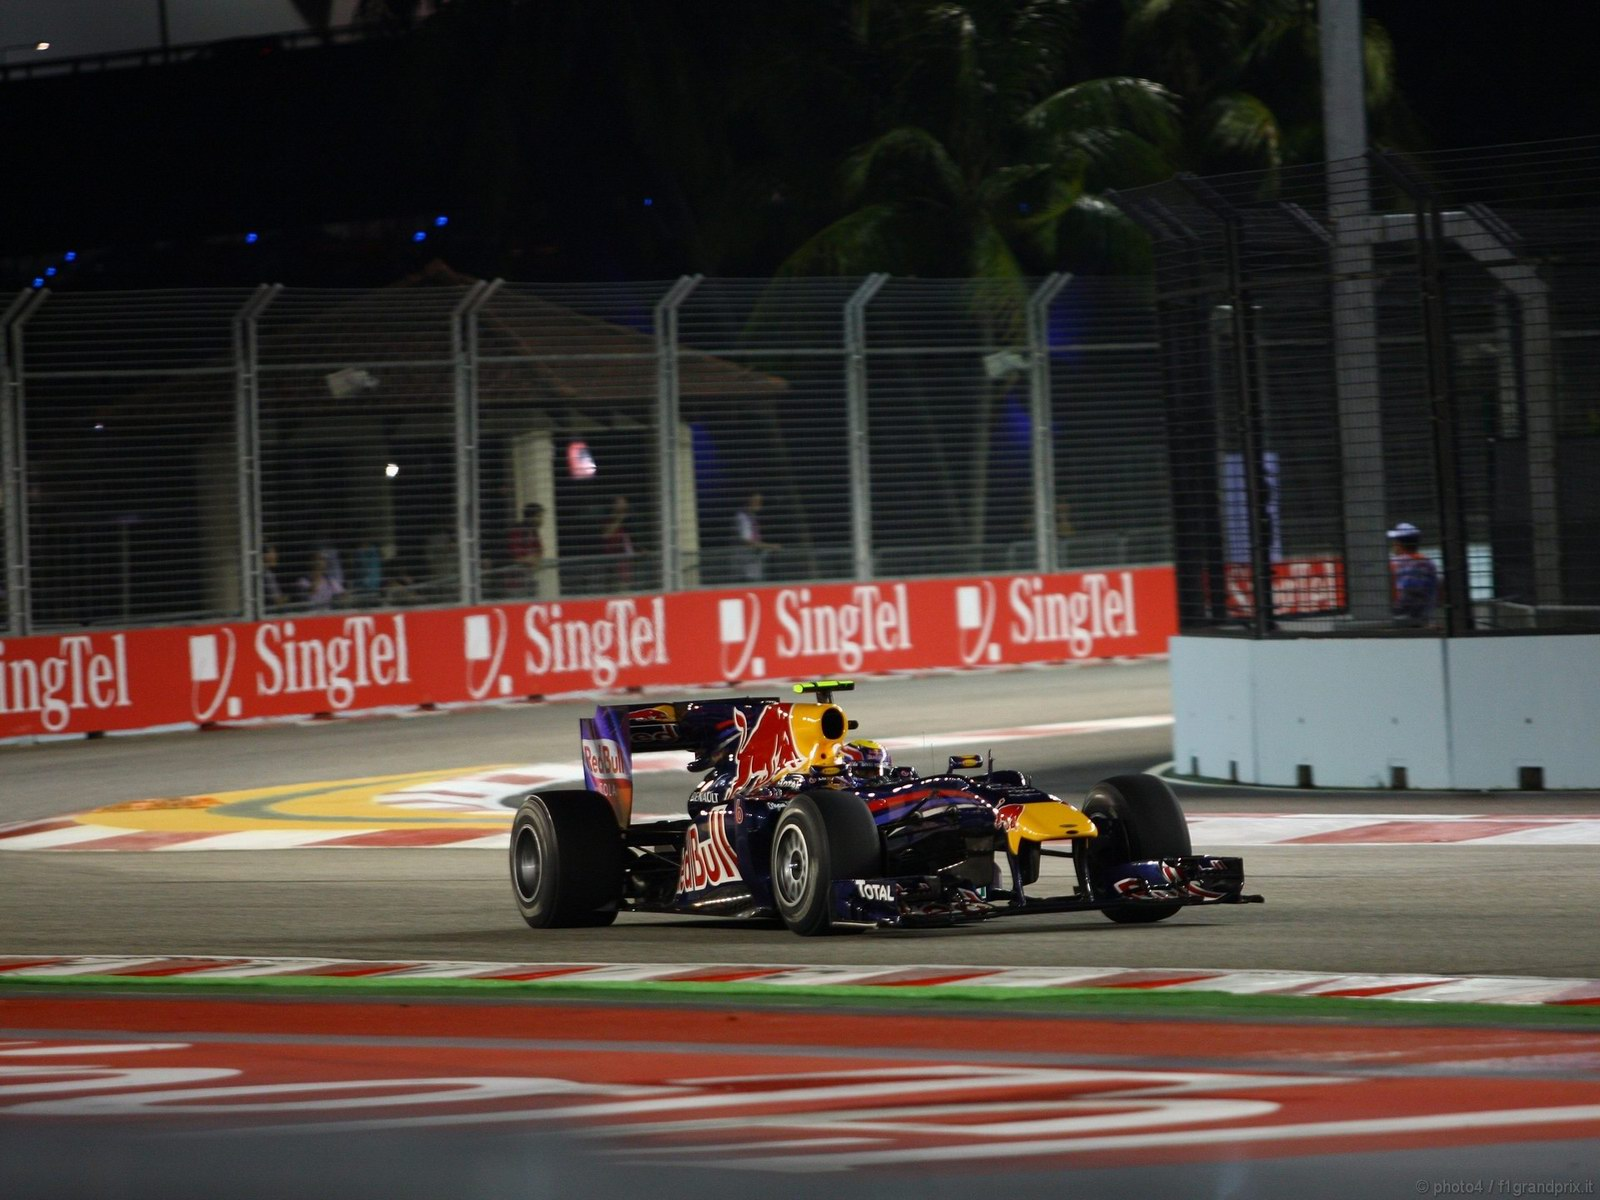 pojazdy - formula1 - gp_singapore_wallpapers_000024